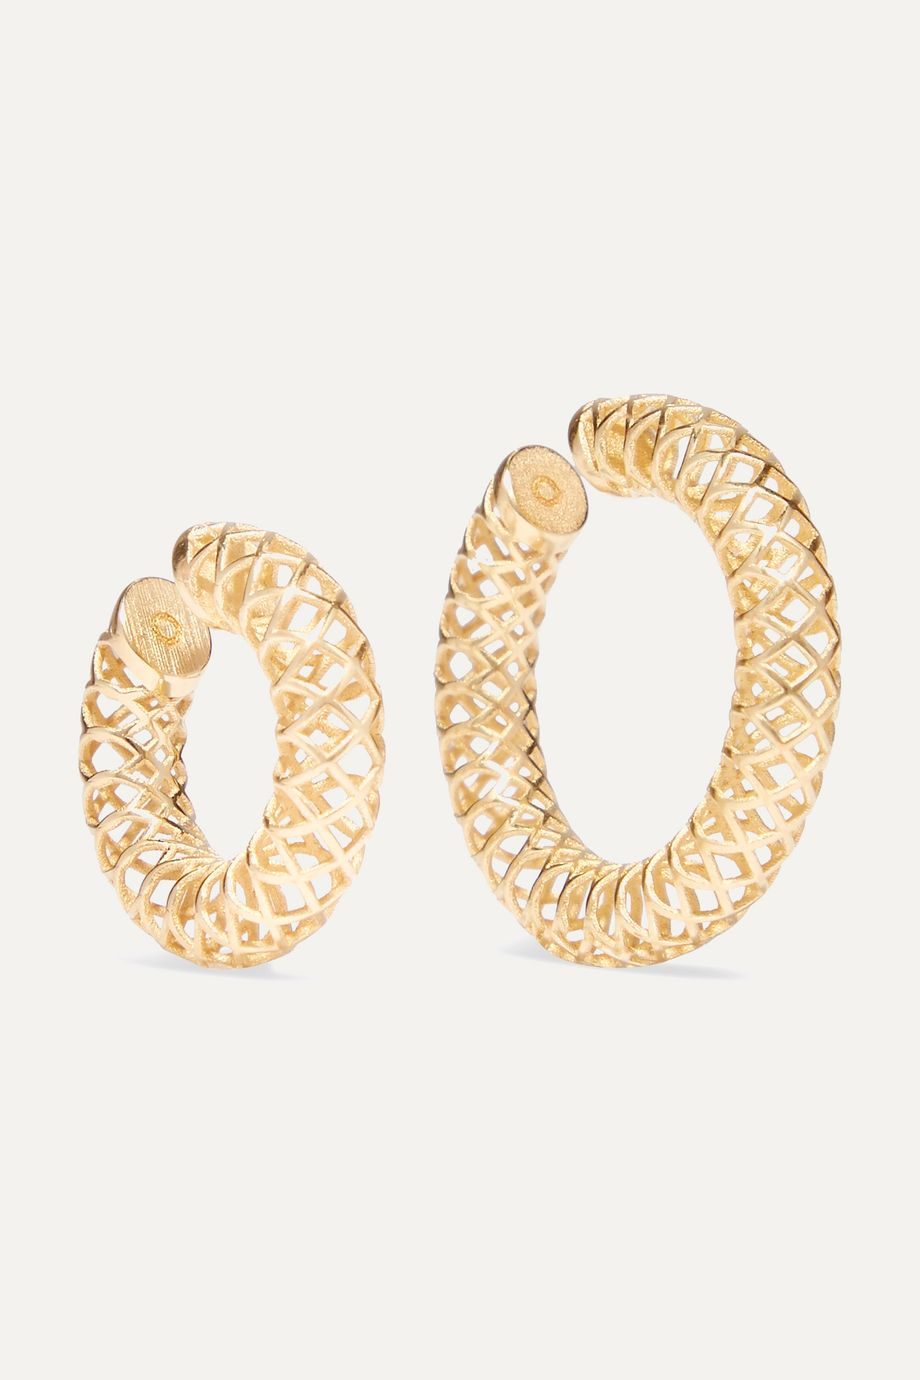 Saskia Diez Set of two gold-plated ear cuffs